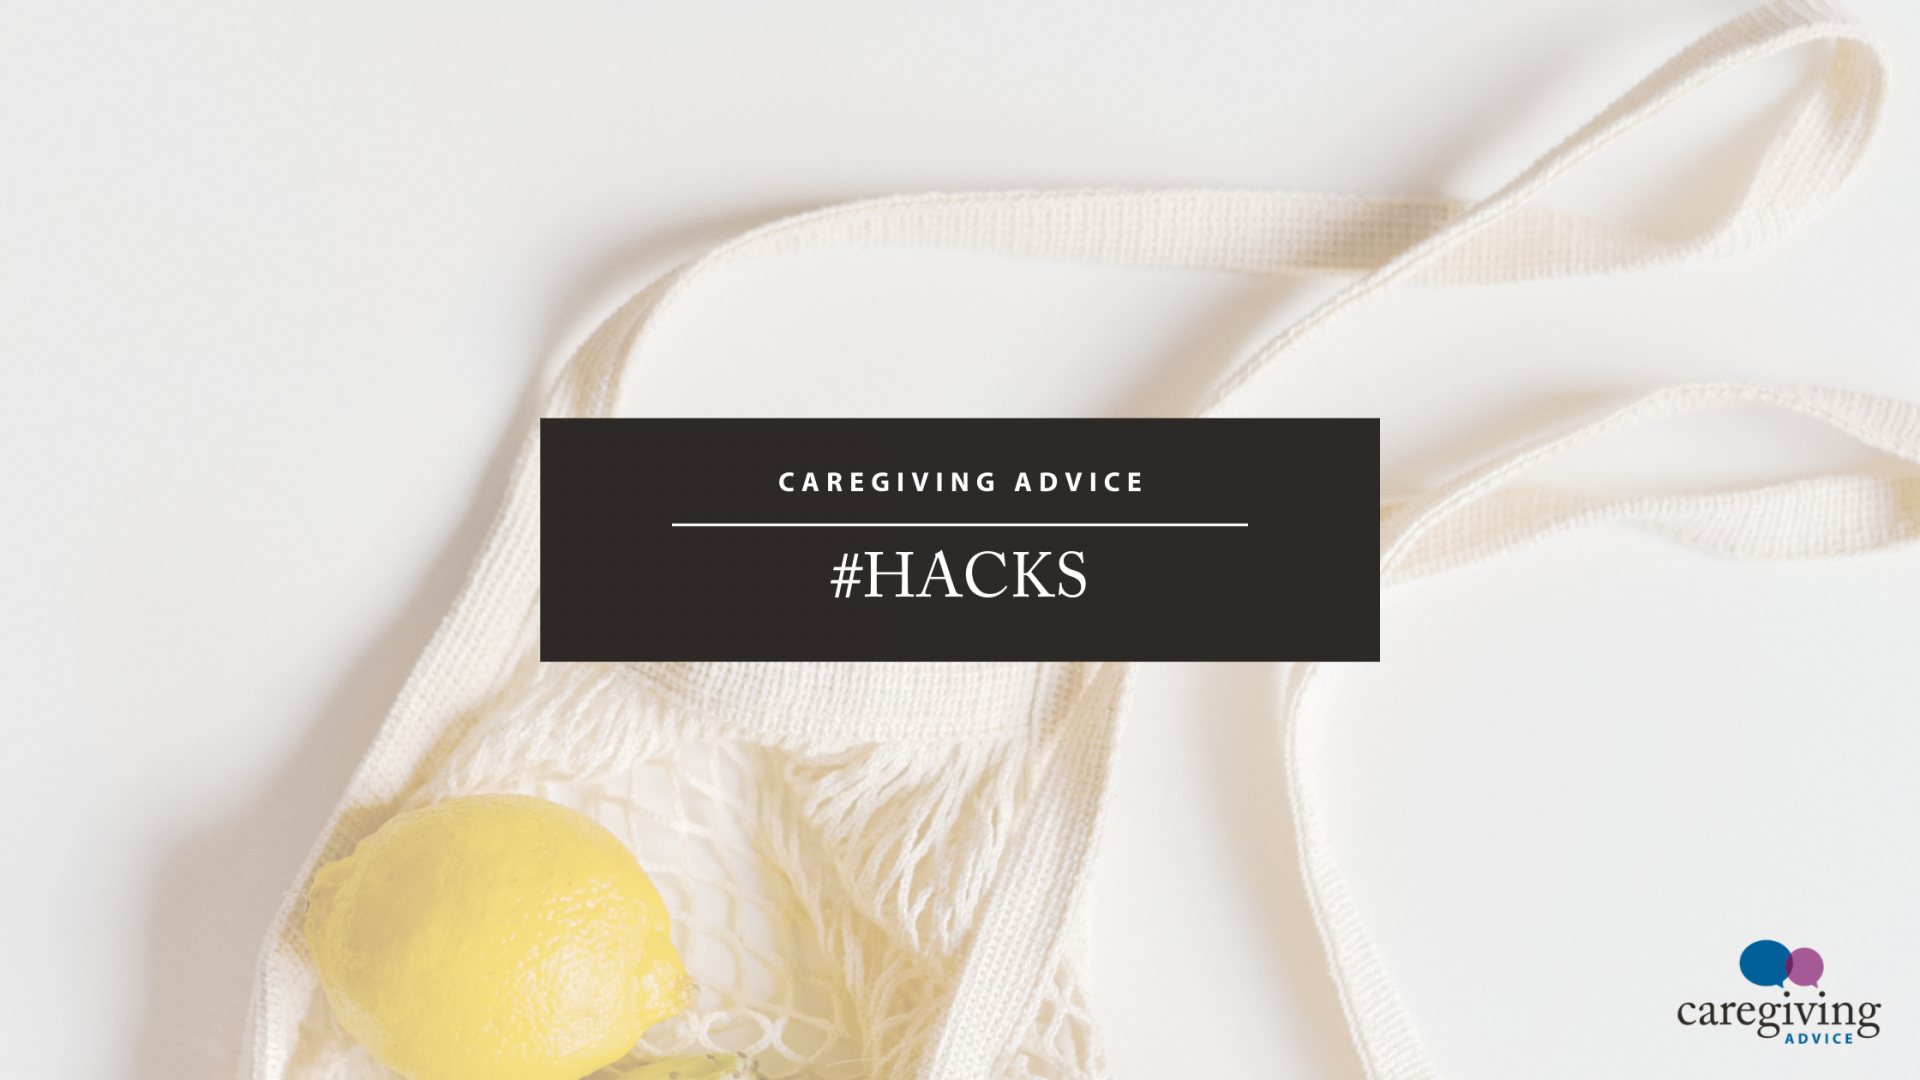 Category image for #Hacks section of the blog.